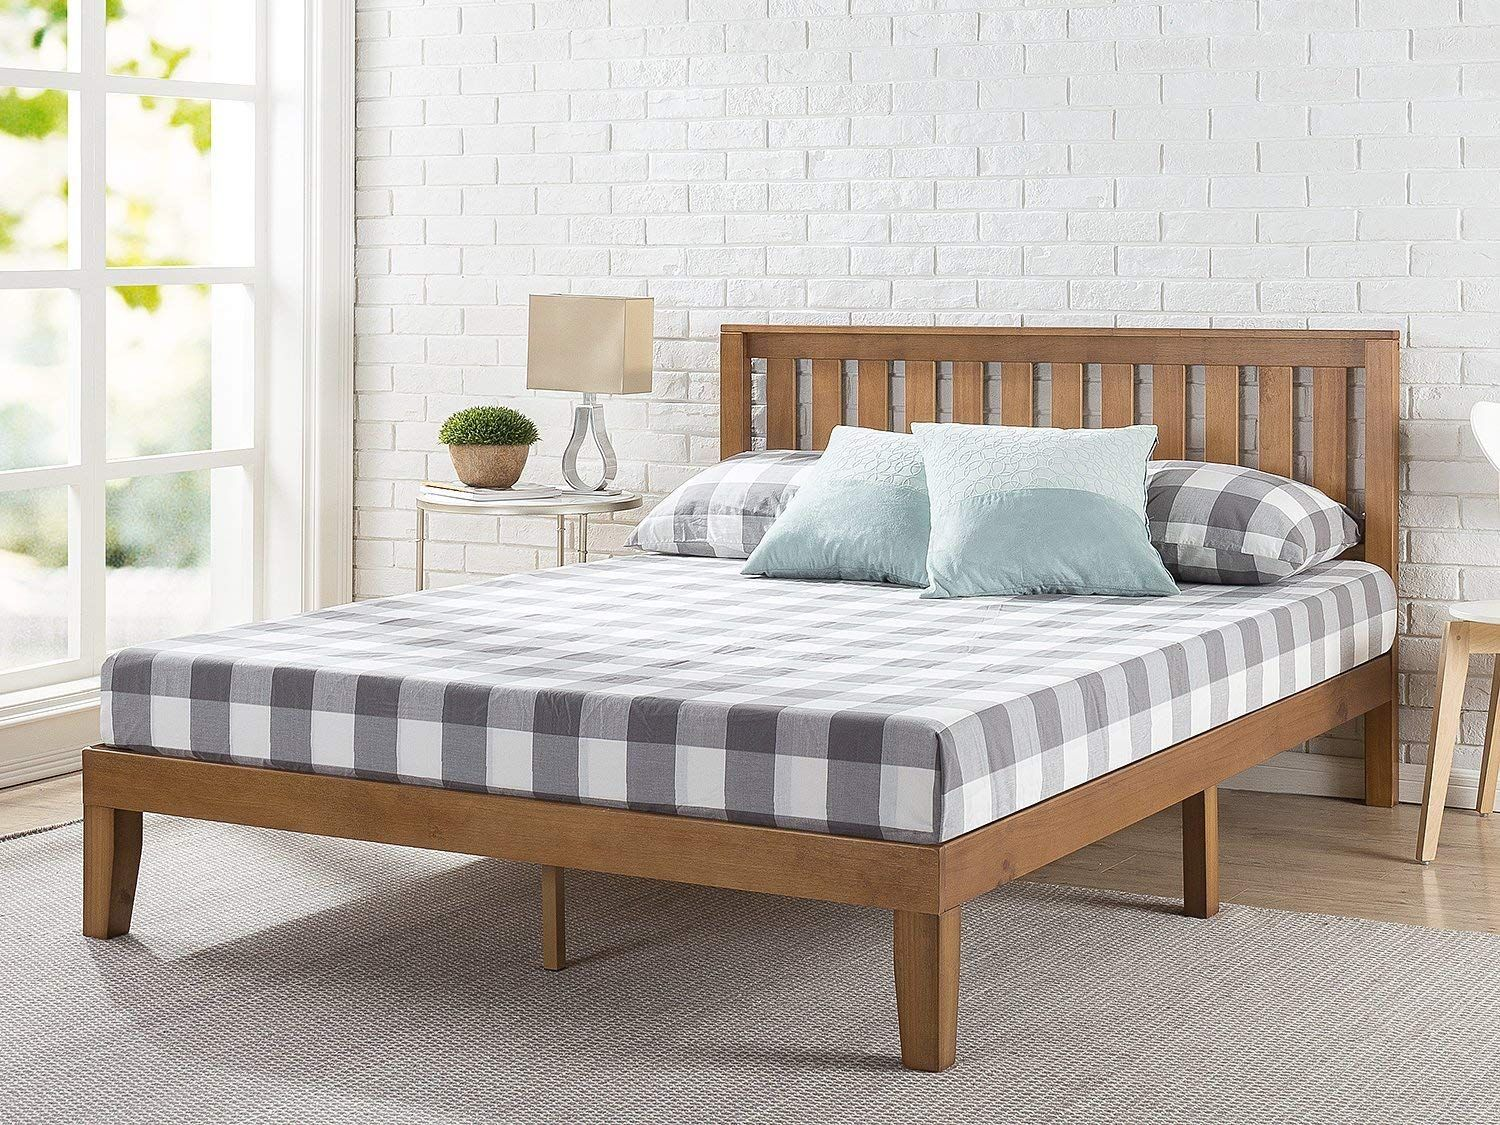 Amazon Com Ad Zinus Inc Designs Fluffy Supportive Nice Smelling Things That Are Easy Solid Wood Platform Bed Bed Without Headboard Headboards For Beds